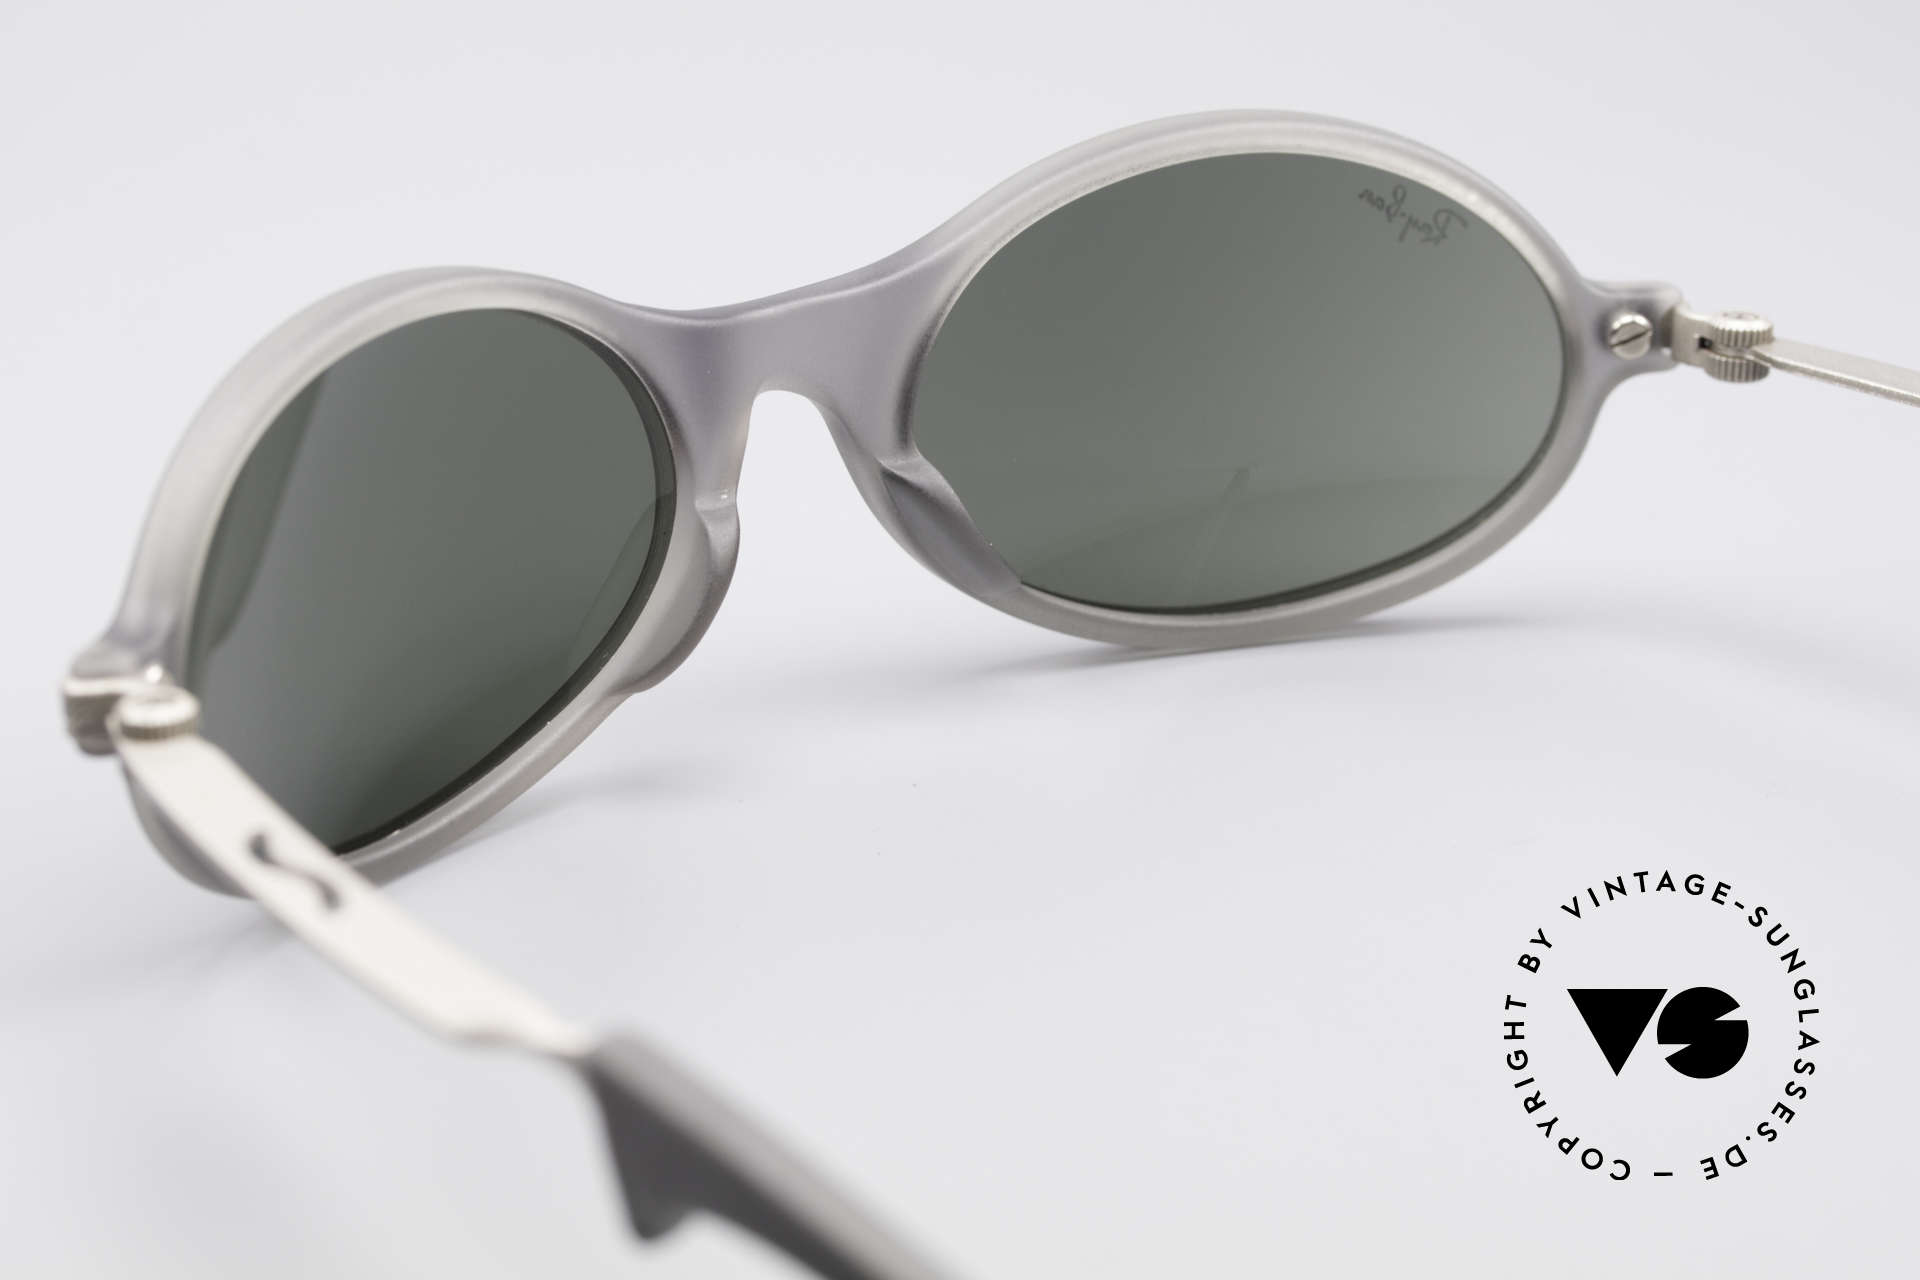 Ray Ban Orbs Oval Combo Silver Mirror B&L USA Shades, with silver-mirrored Bausch&Lomb B&L mineral lenses, Made for Men